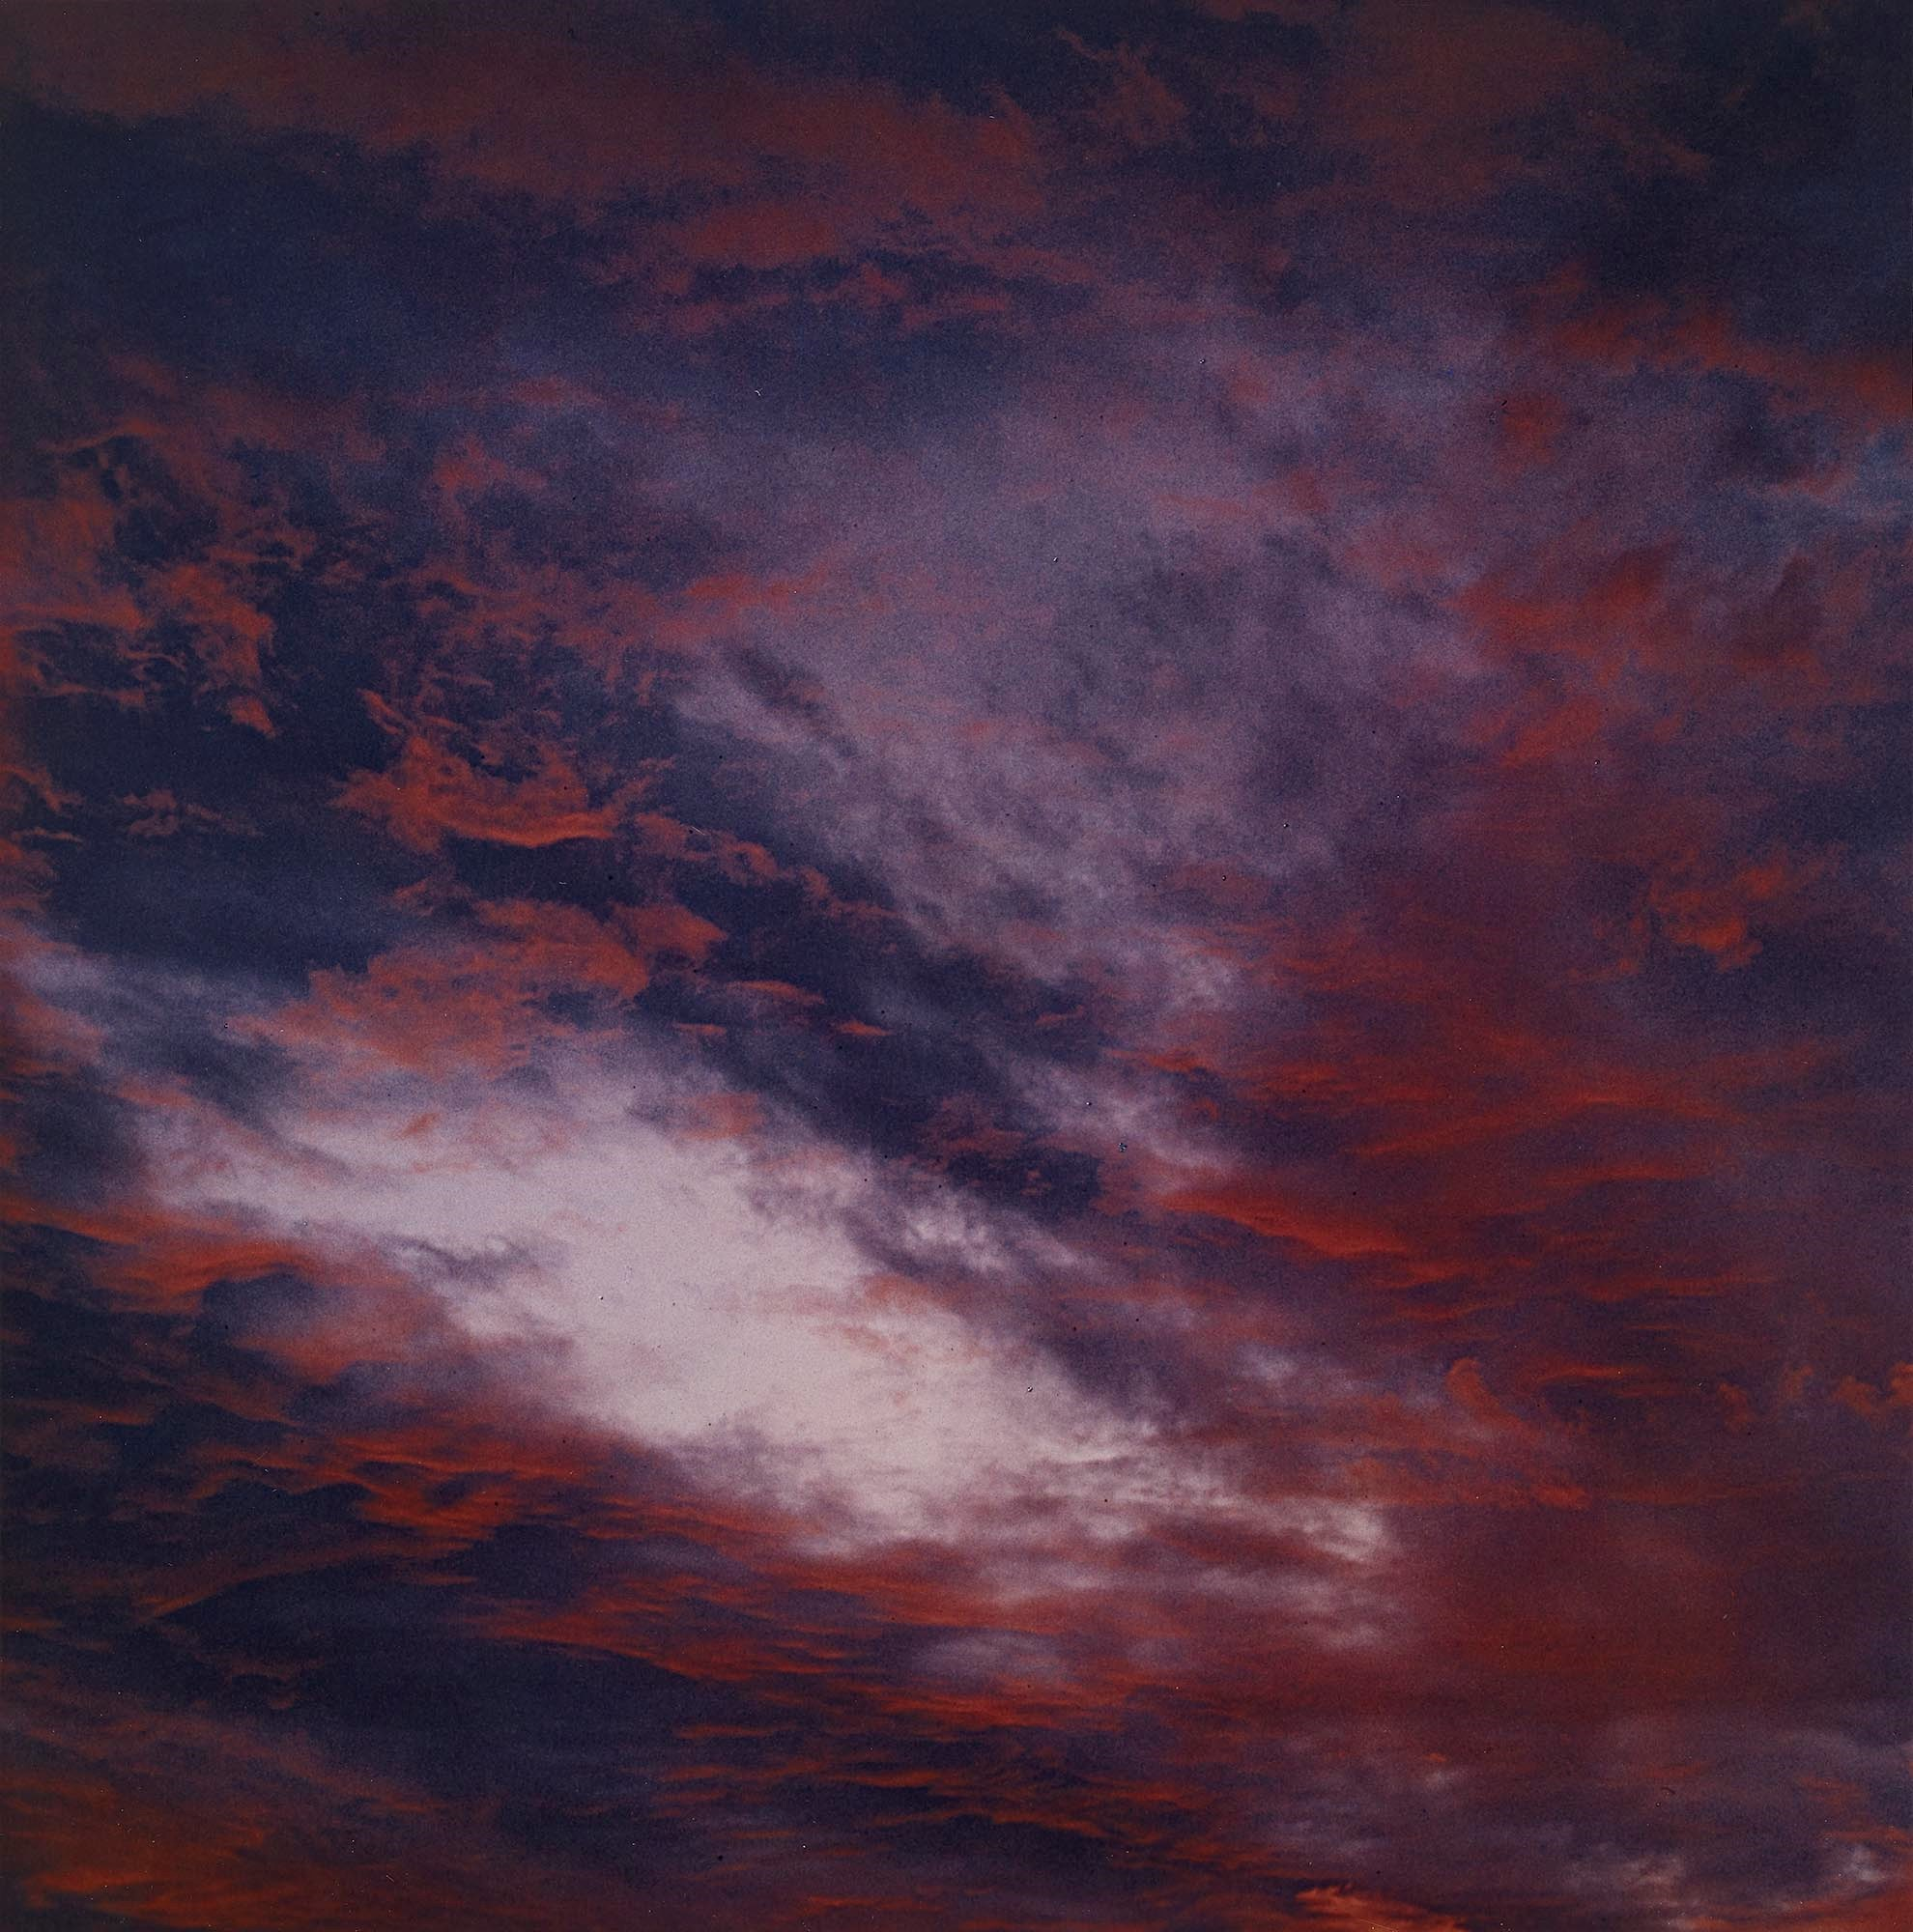 Porter - Clouds at Sunset, Tesuque, NM